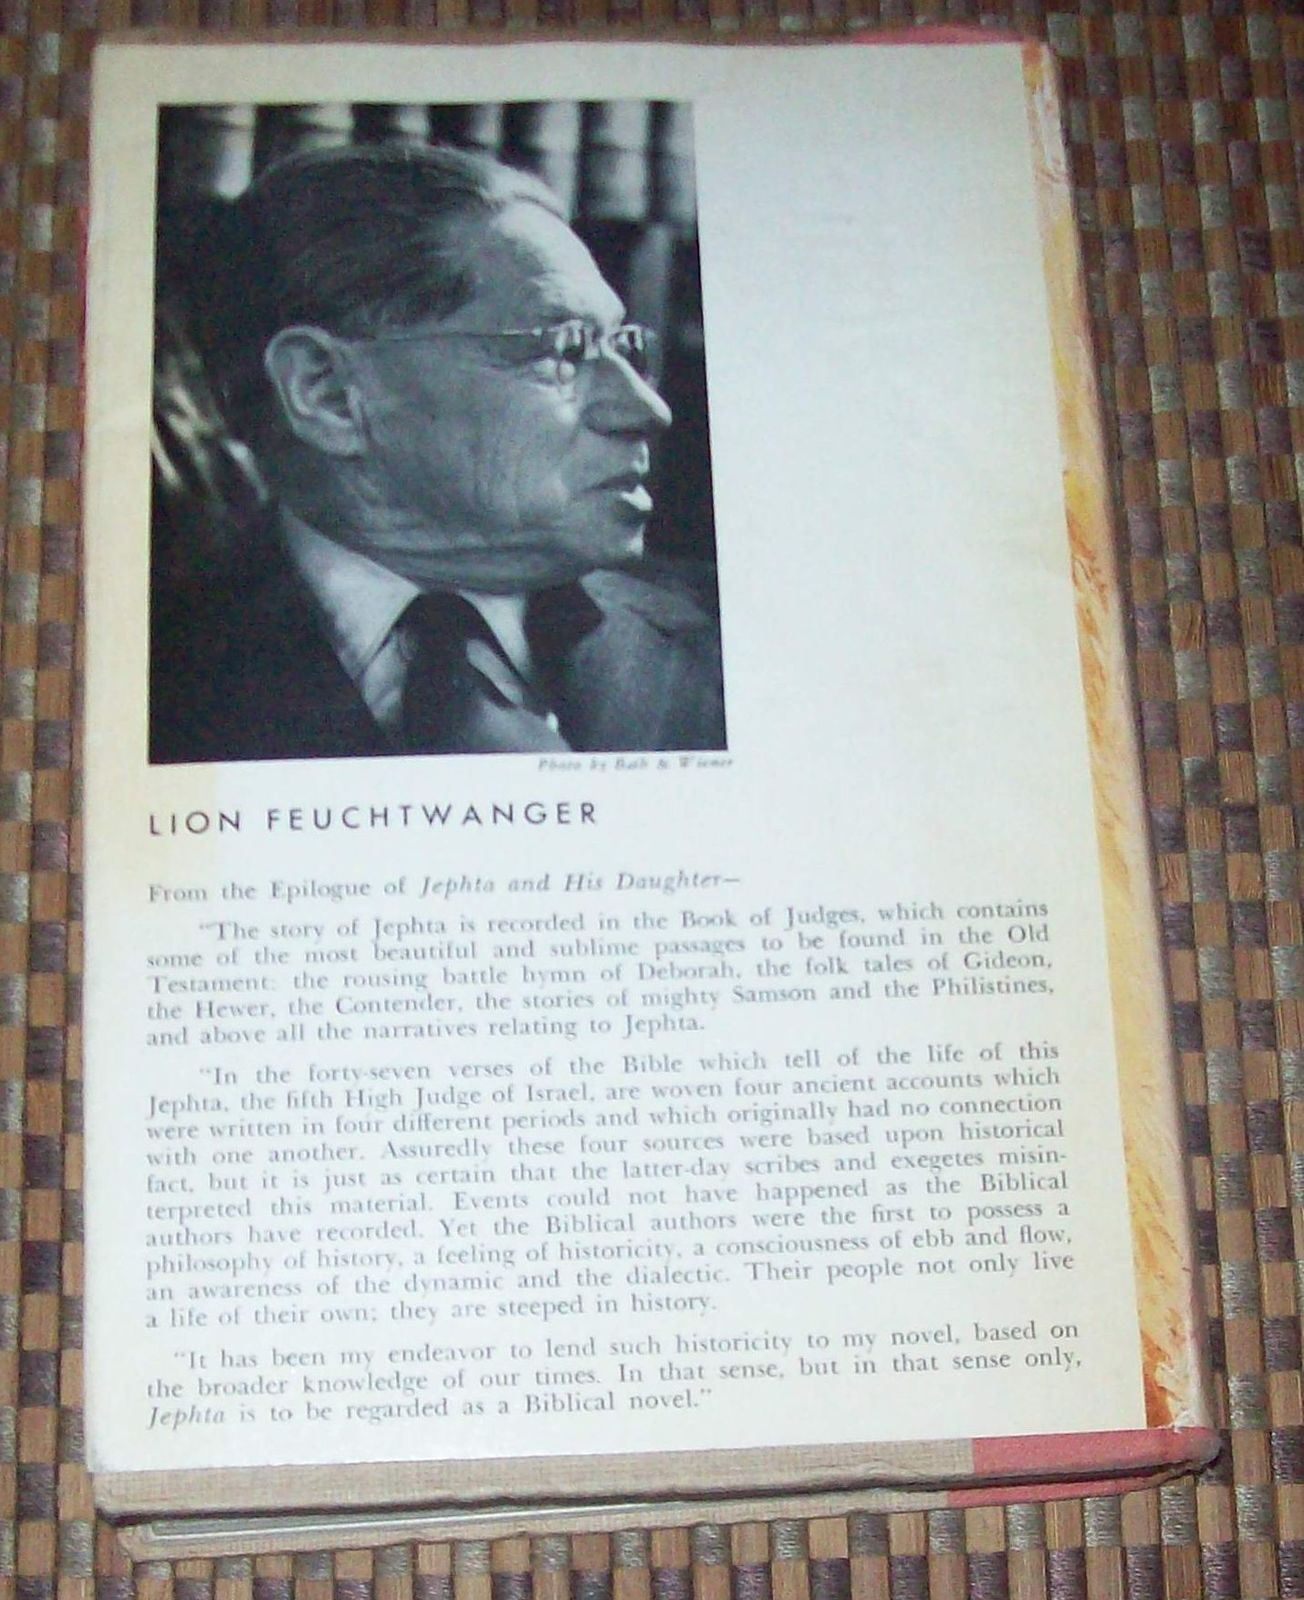 Jephta and His Daughter by Lion Feuchtwanger 1958 HBDJ Biblical Hero